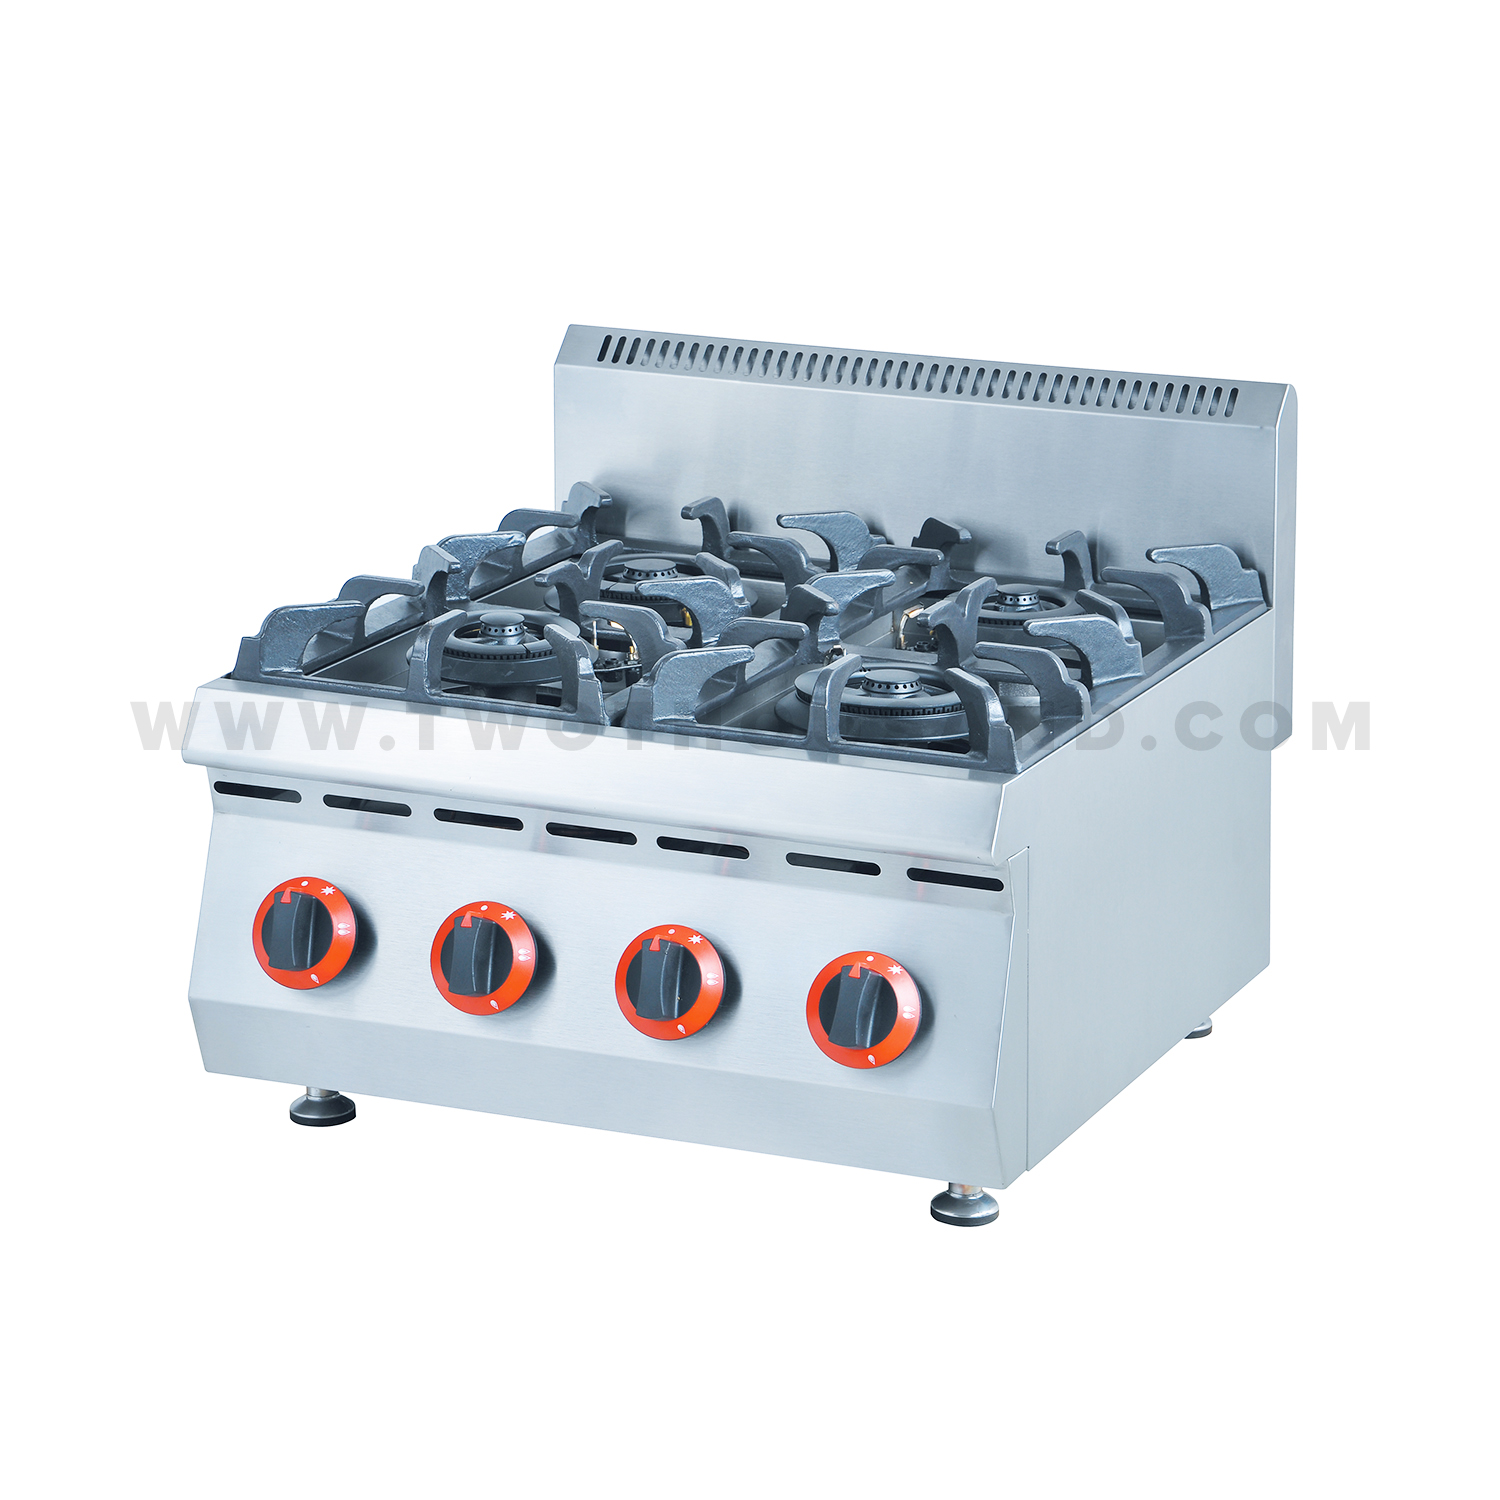 Table Top Gas Cooker, Table Top Gas Cooker Suppliers and ...